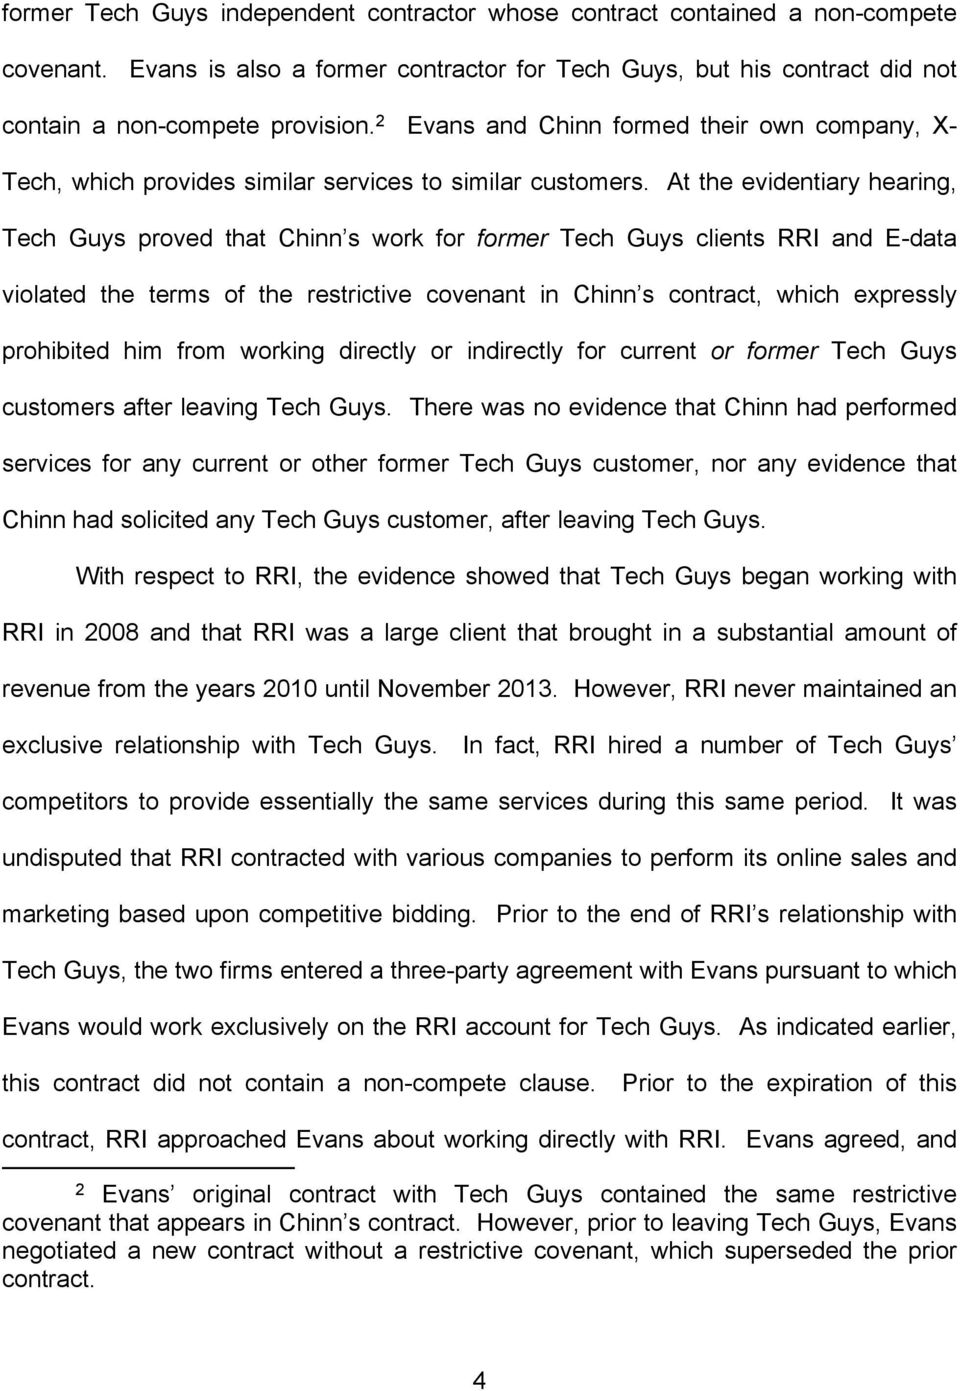 At the evidentiary hearing, Tech Guys proved that Chinn s work for former Tech Guys clients RRI and E-data violated the terms of the restrictive covenant in Chinn s contract, which expressly